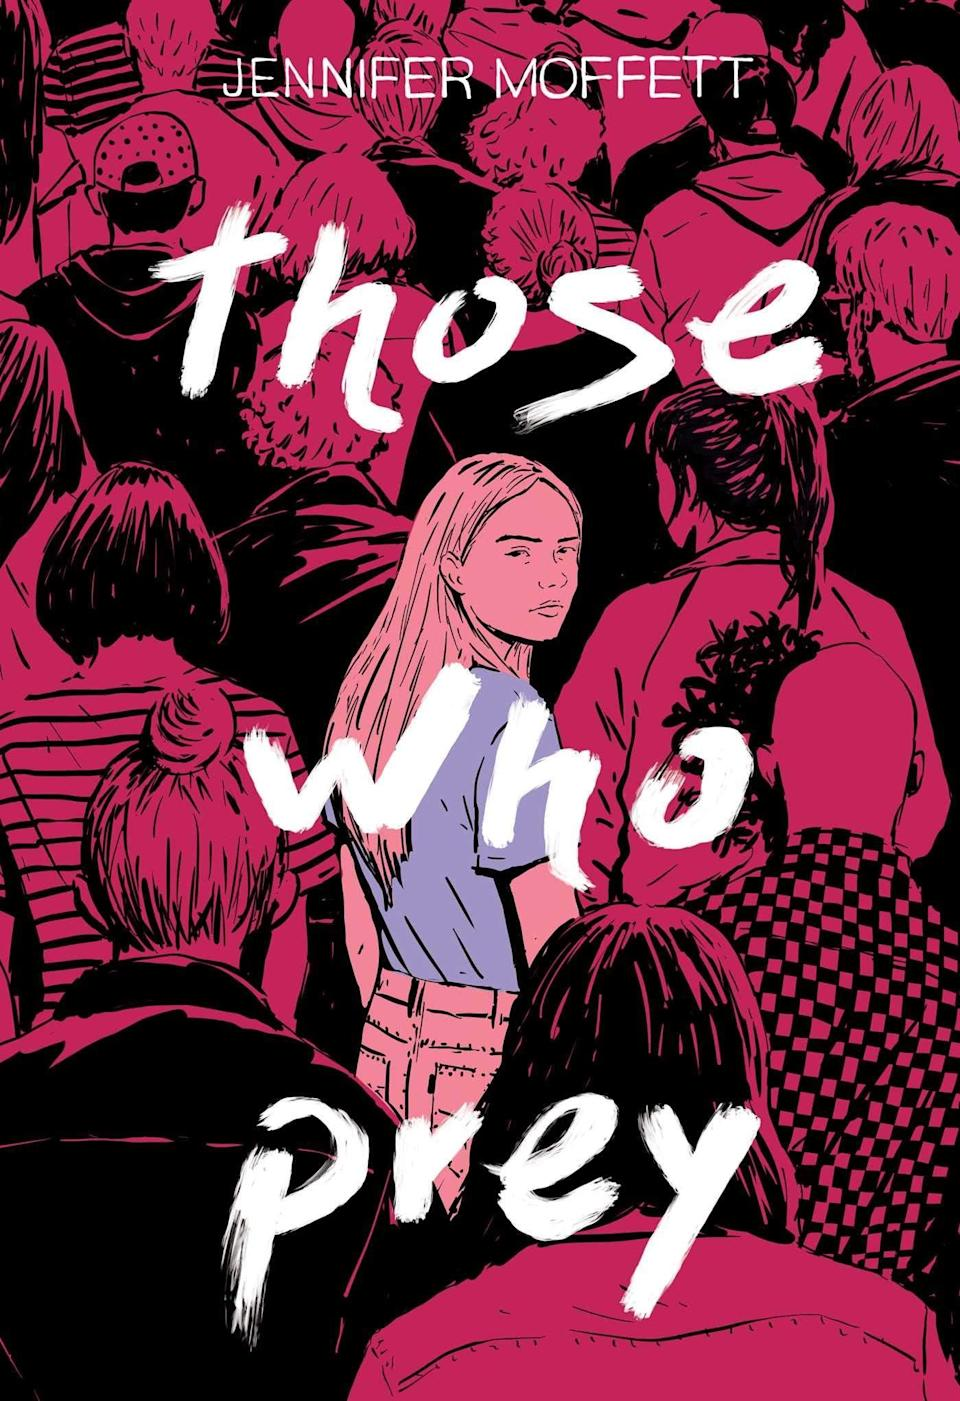 <p>A young woman's freshman year at college takes a dark turn in <span><strong>Those Who Prey</strong></span> by Jennifer Moffett. When Emily's college experience turns out to be lonely and isolating, she falls prey to a cult called the Kingdom. At first the group gives her a sense of belonging, but it's not long before Emily realizes she's in way over her head.</p> <p><em>Out Nov. 10</em></p>